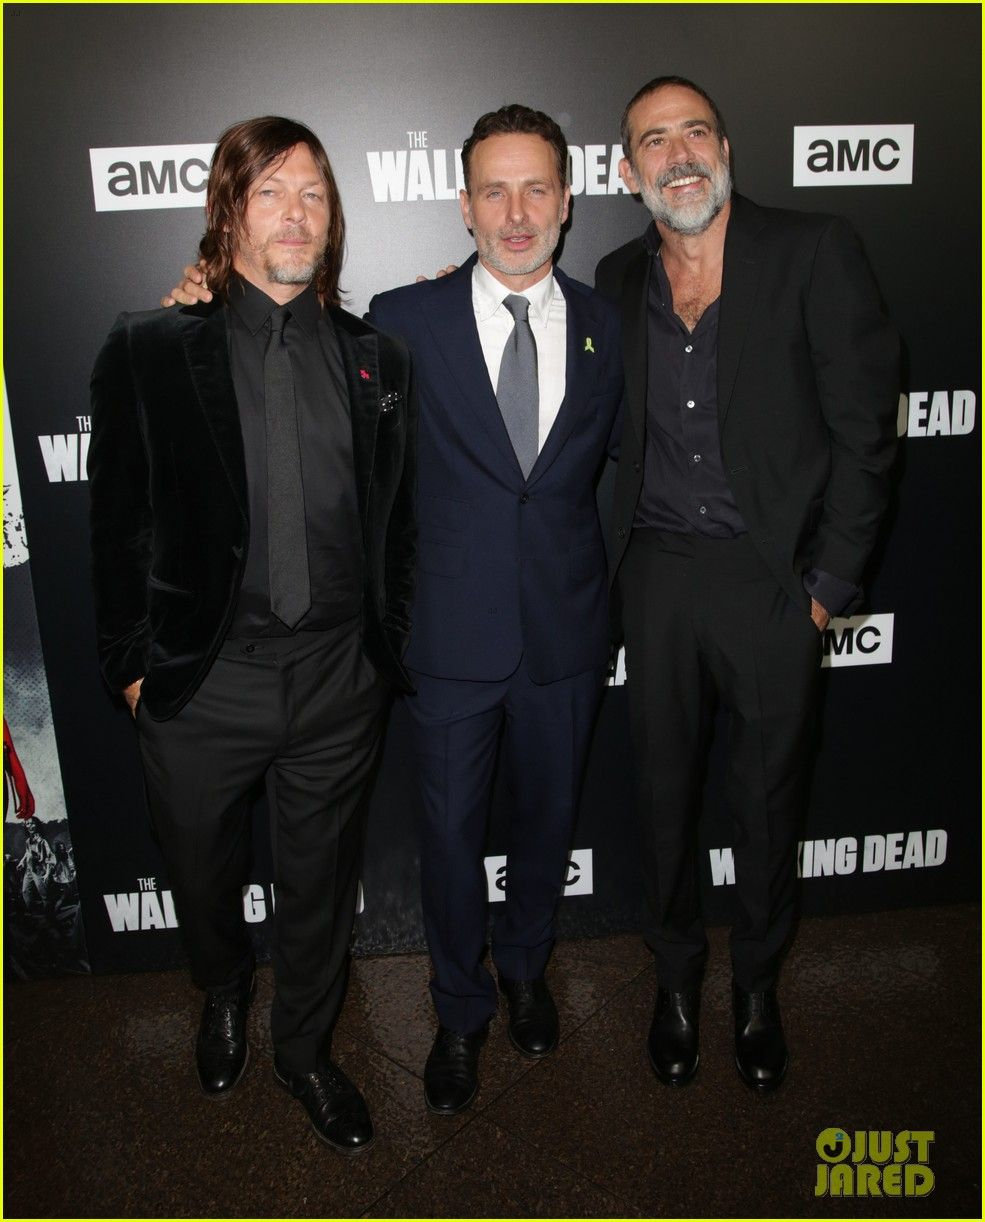 Andrew Lincoln Danai Gurira Walking Dead Stars Attend Season 9 Screening The Walking Dead The Walking Dead Poster Walking Dead Season